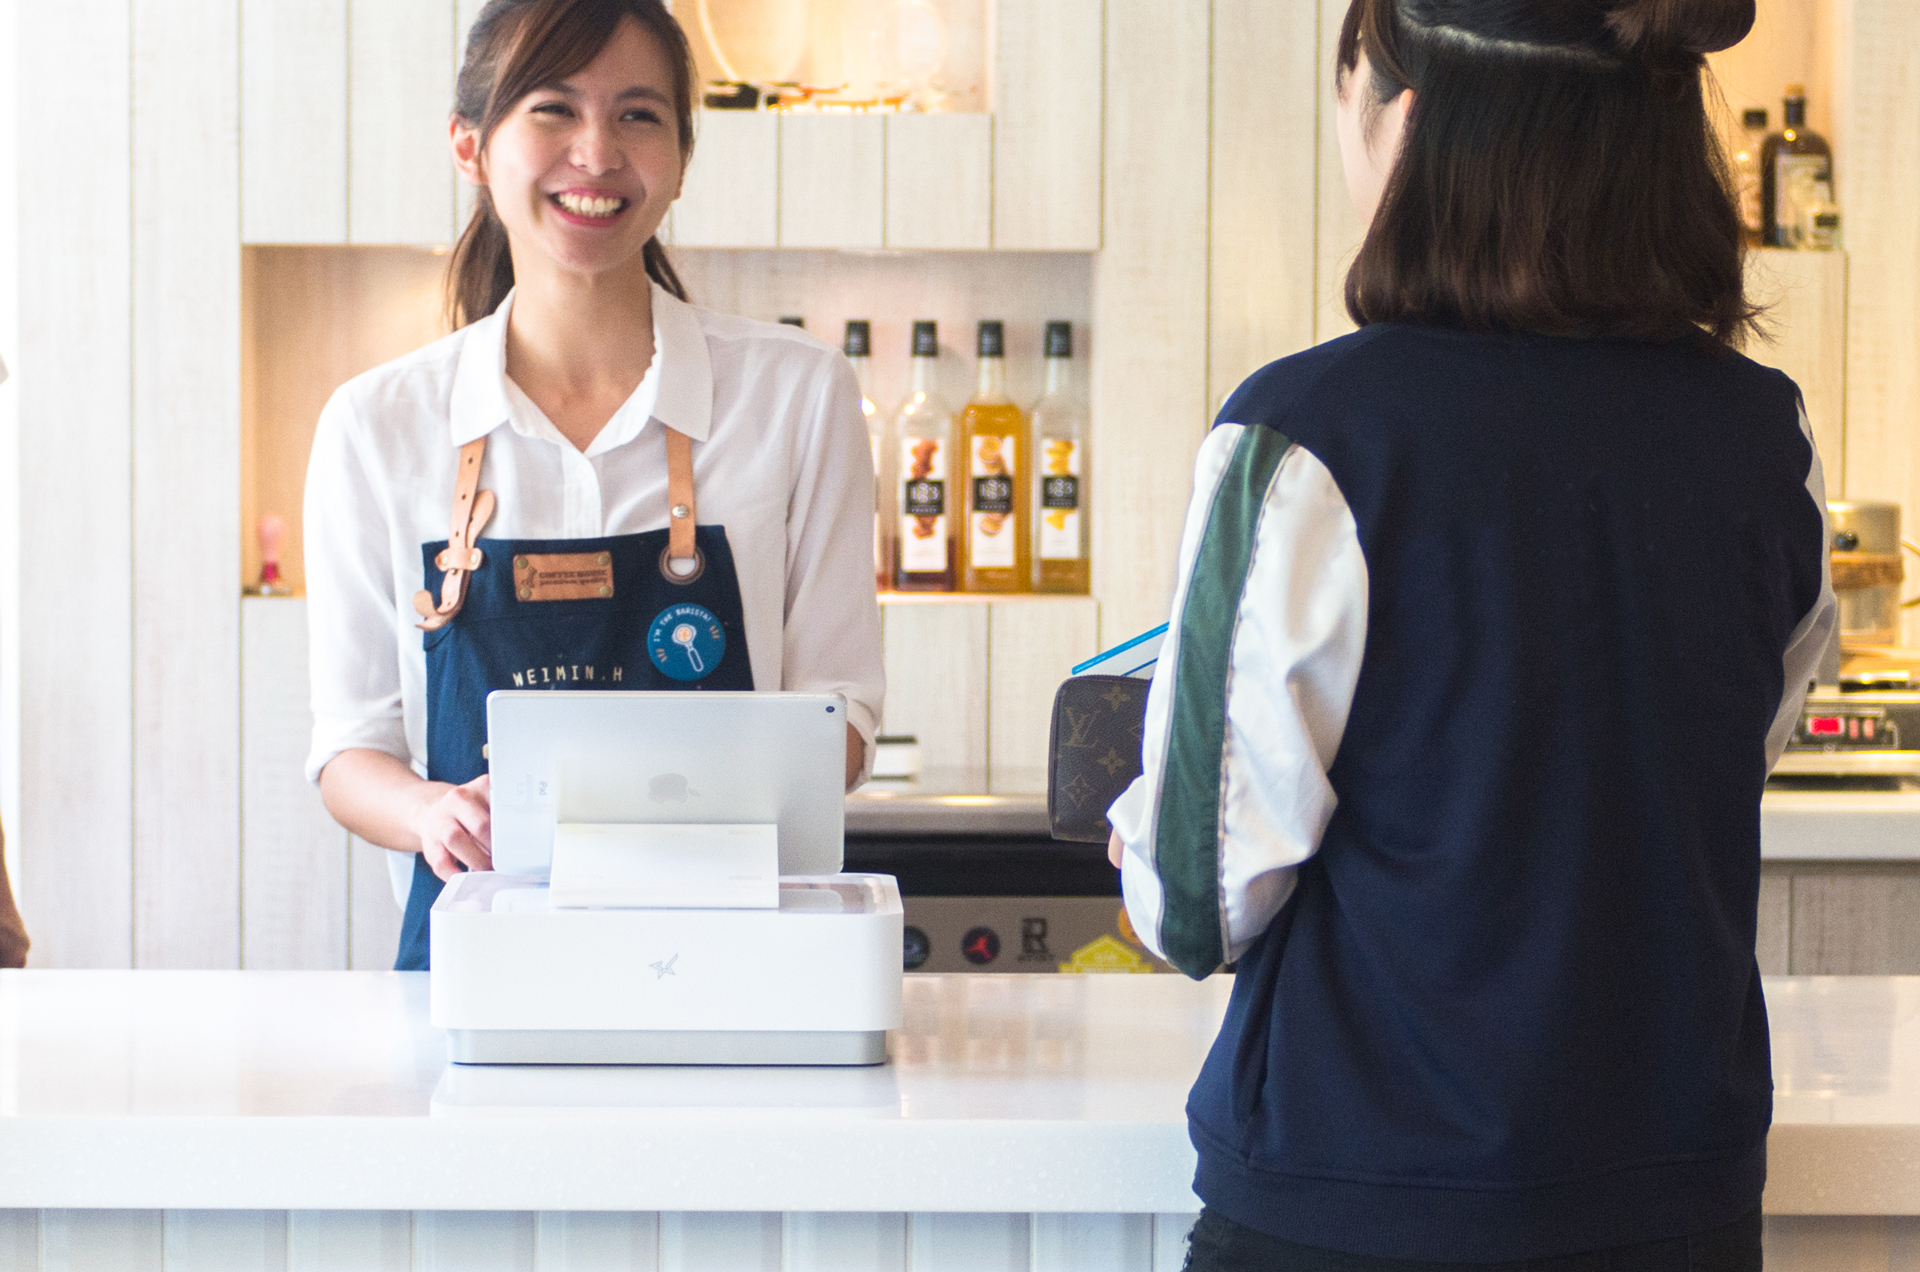 iCHEF POS Singapore, CRM System, New feature released